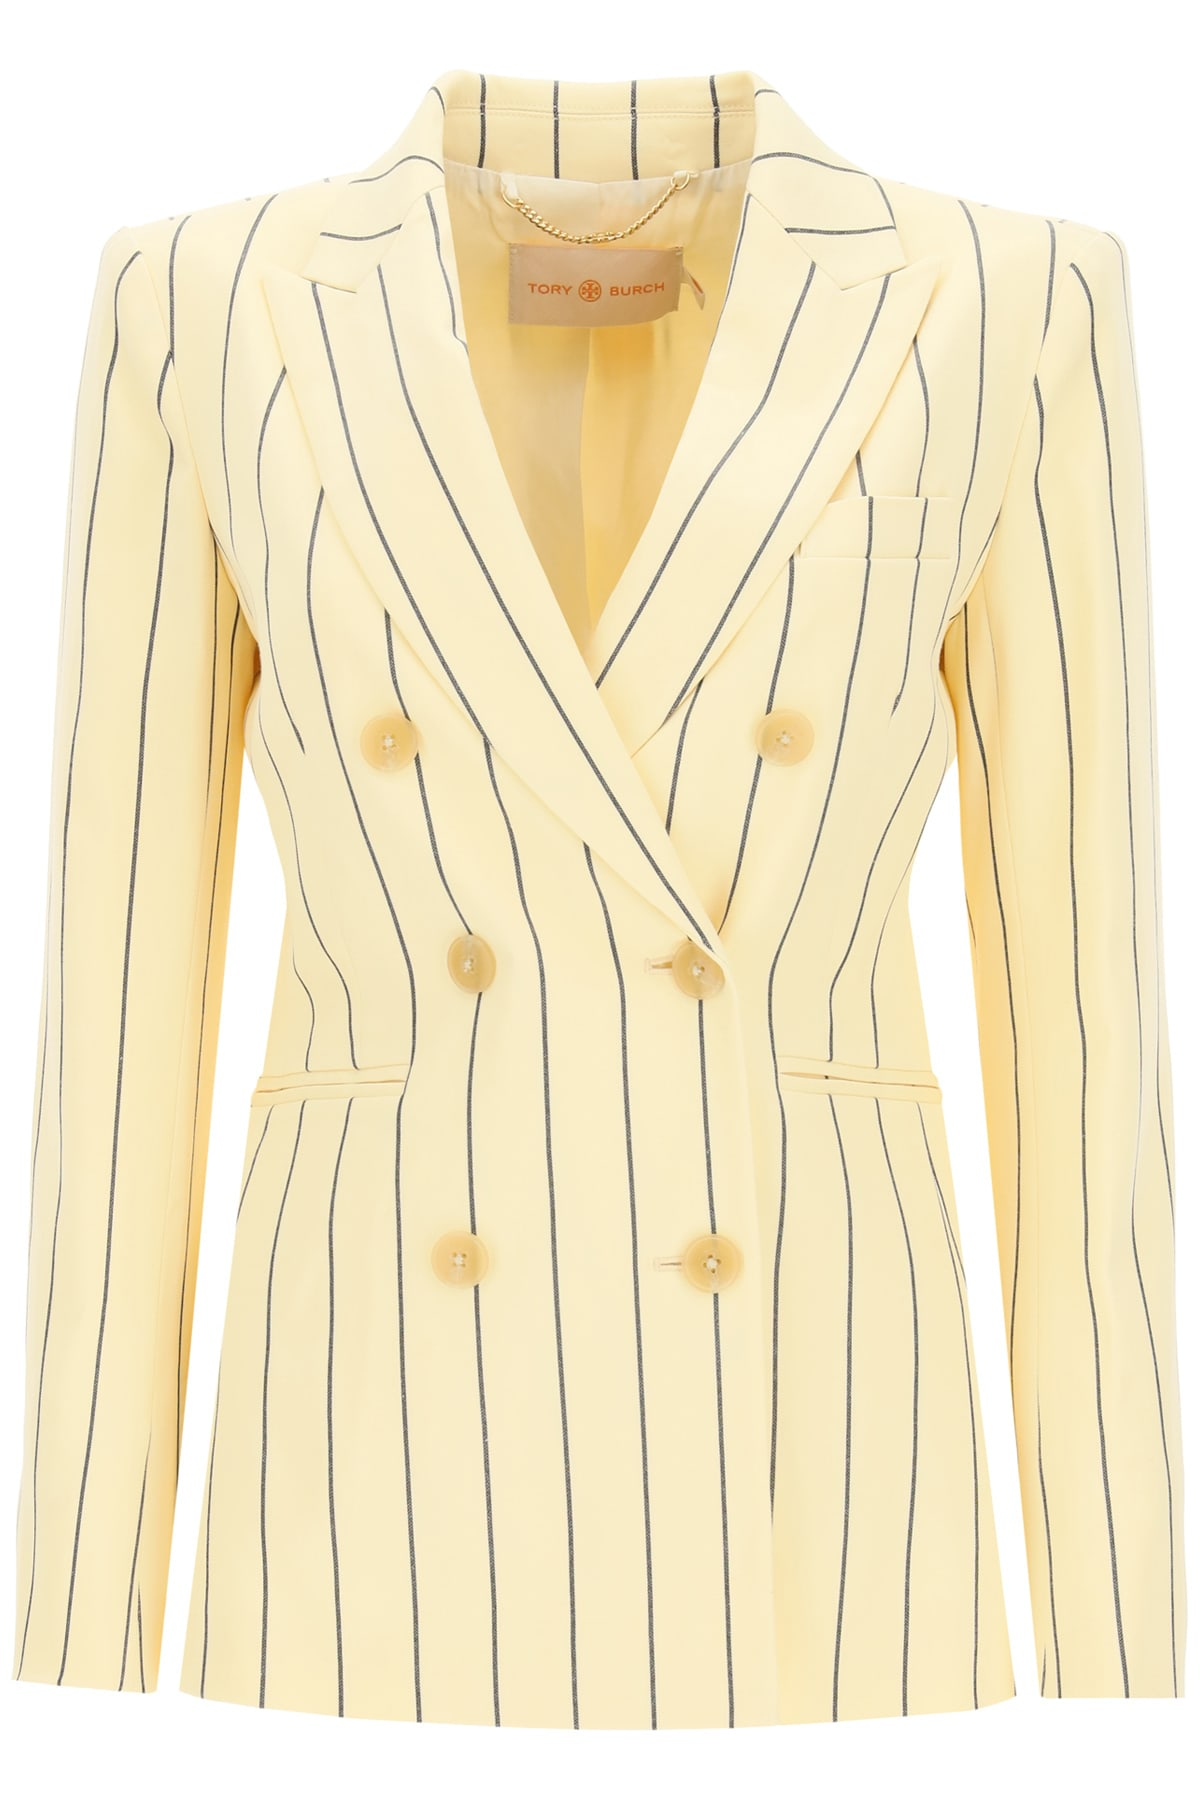 Tory Burch STRIPED BLAZER